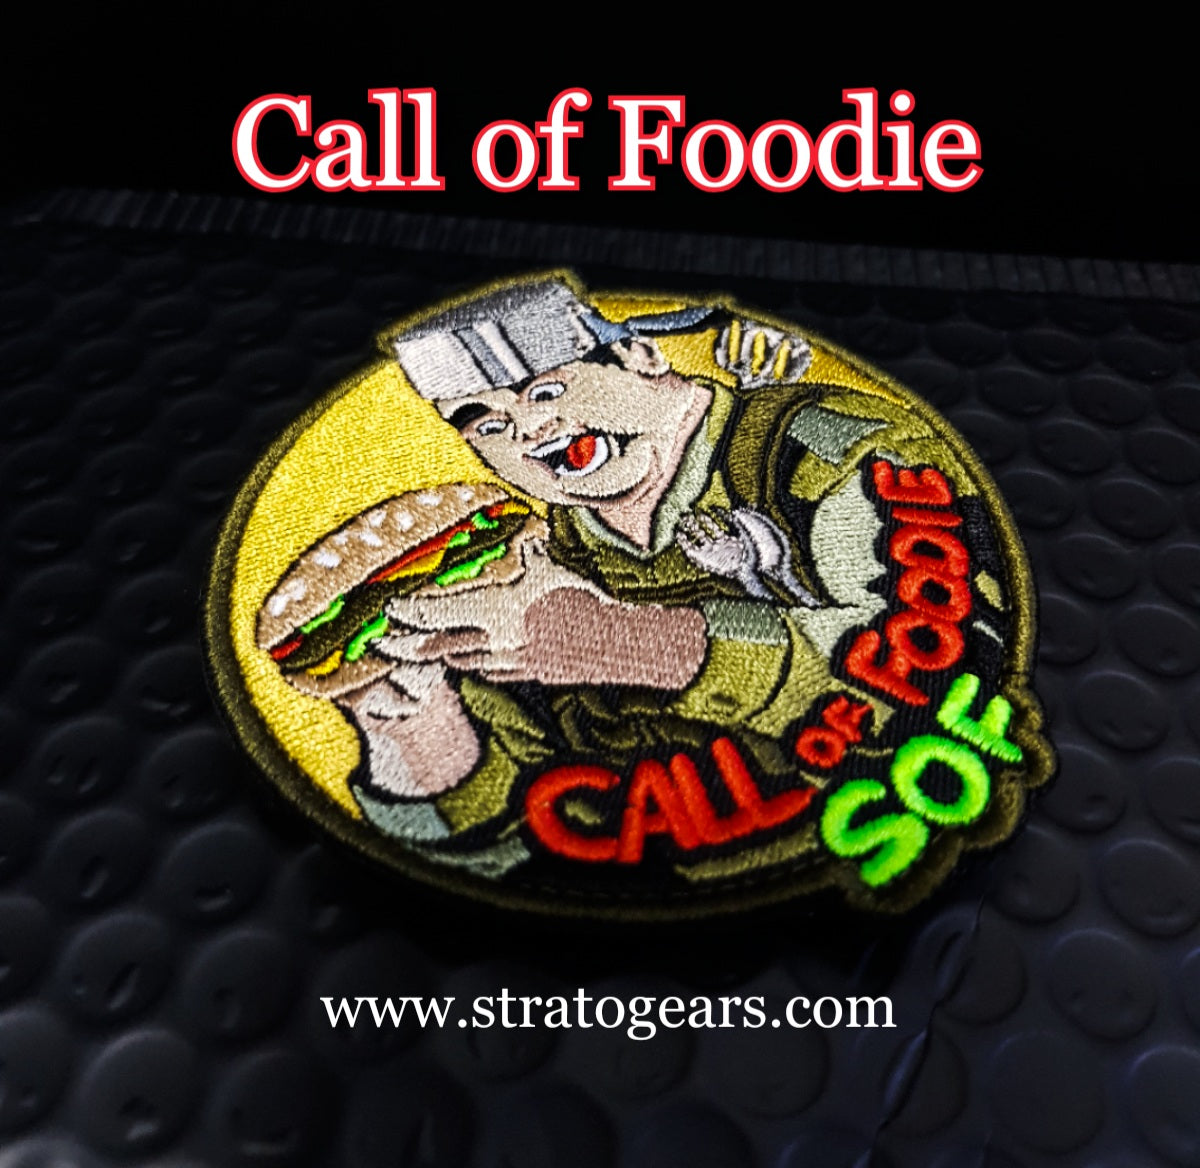 Call Of Foodie SOF